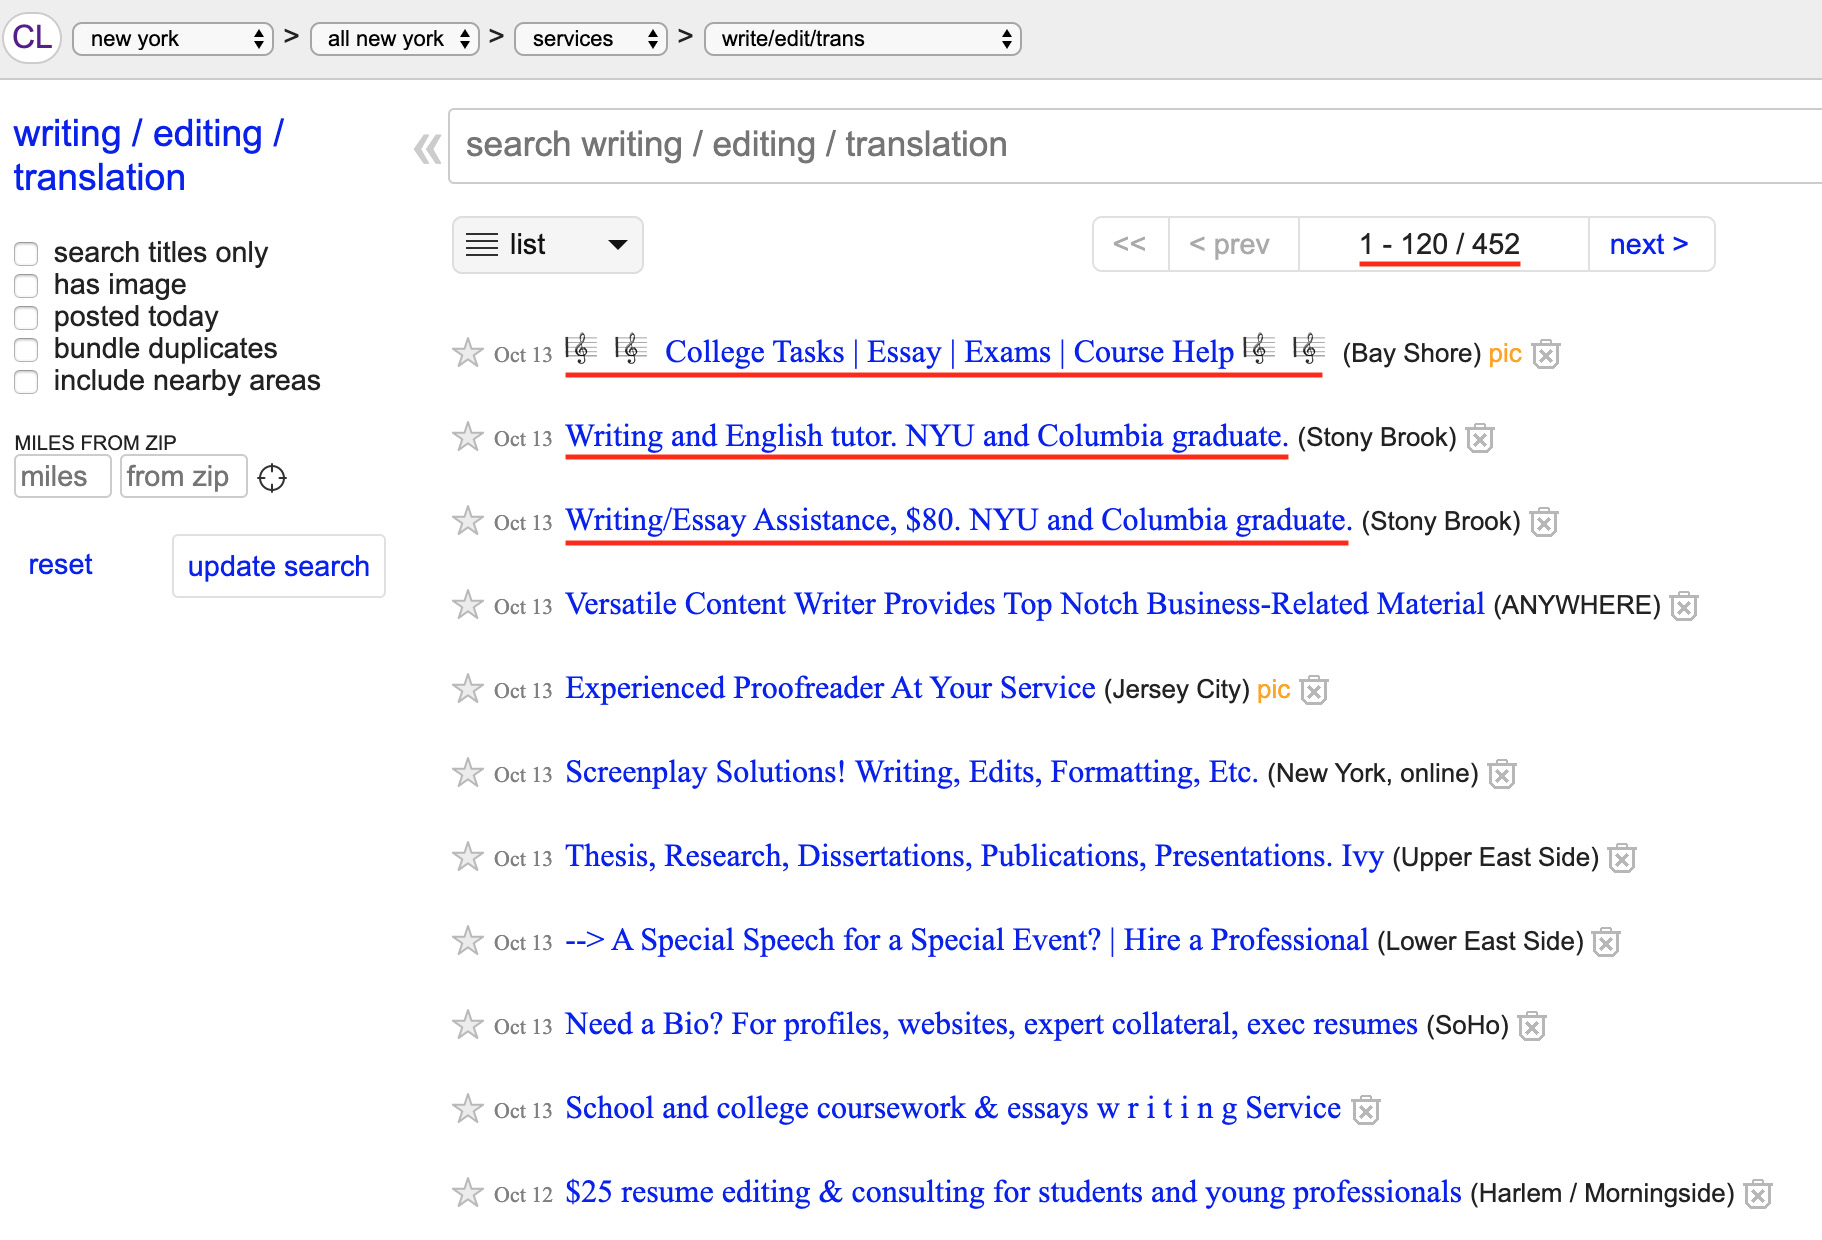 A screenshot from the Writing / Editing / Translation section of Craigslist, showing various offers and prices.